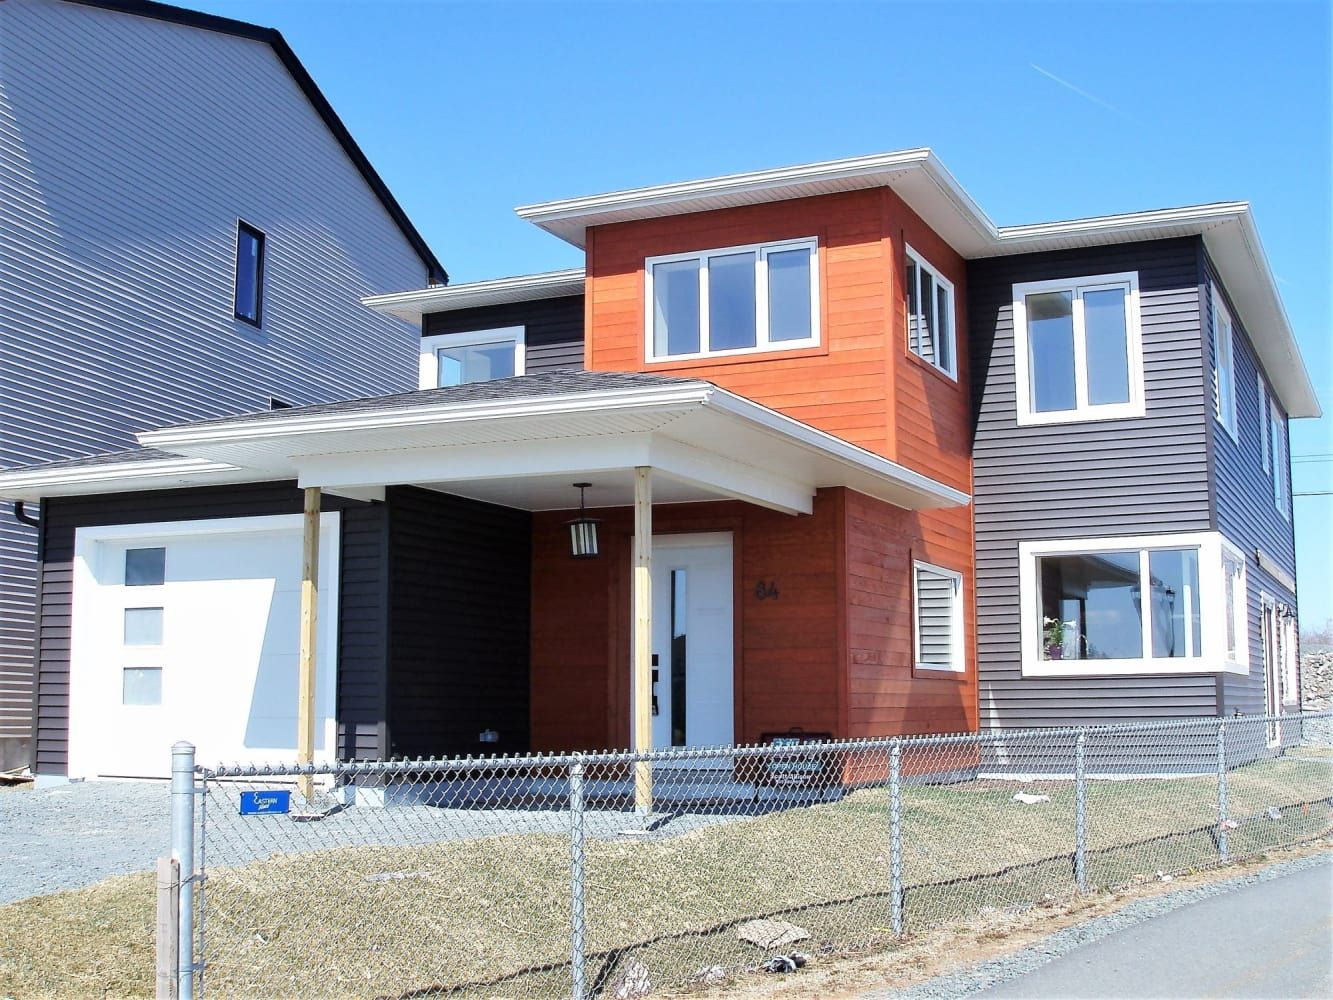 Visit The Passive House That Has Halifax Talking Passive Houses